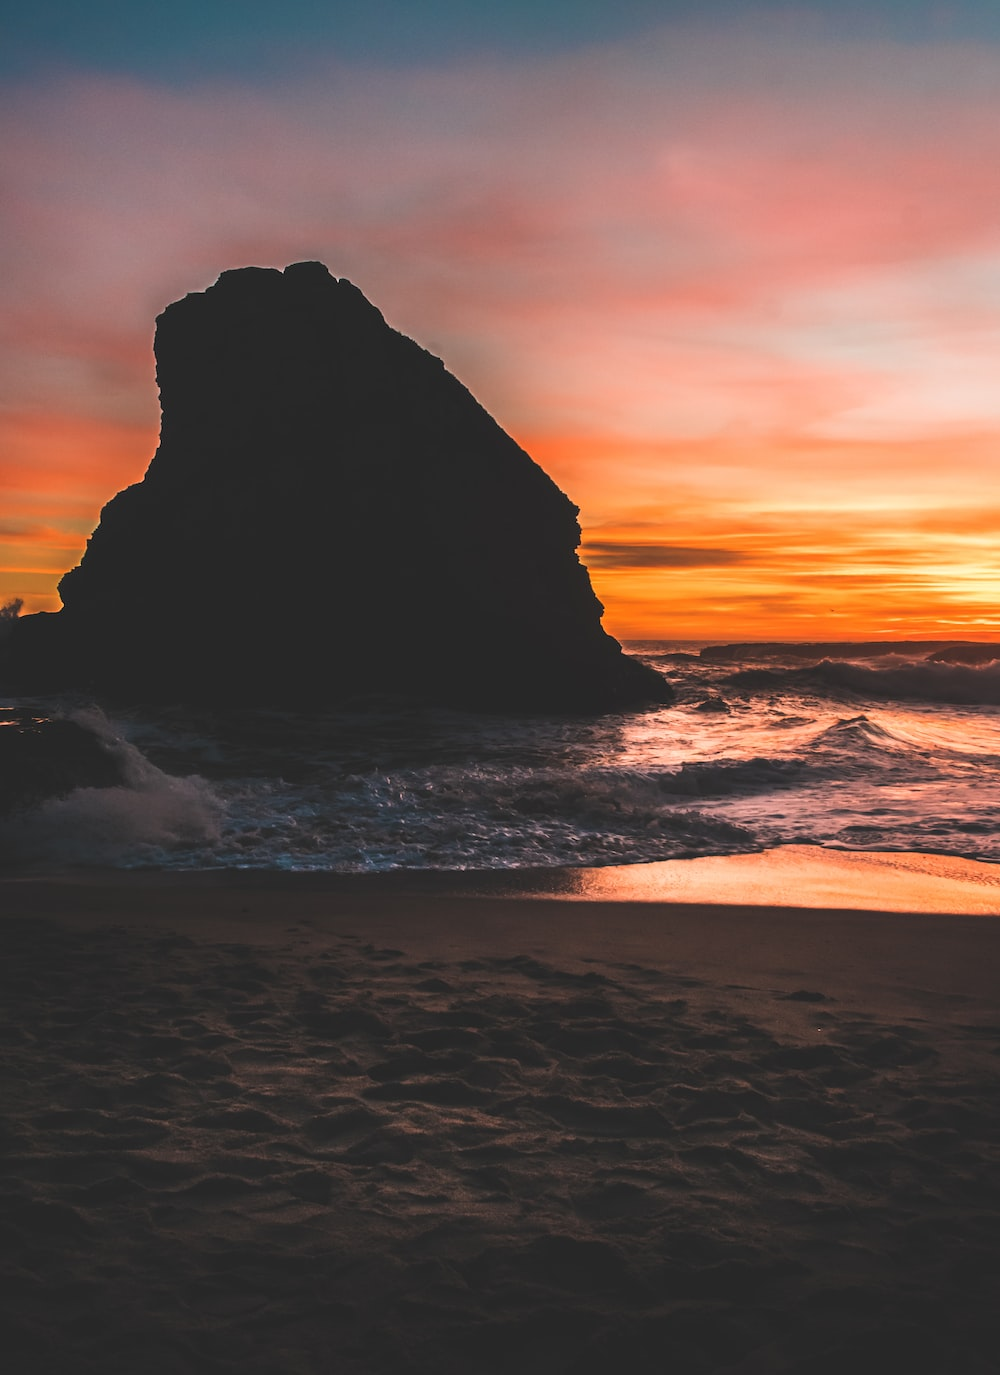 rock in body of water during sunset